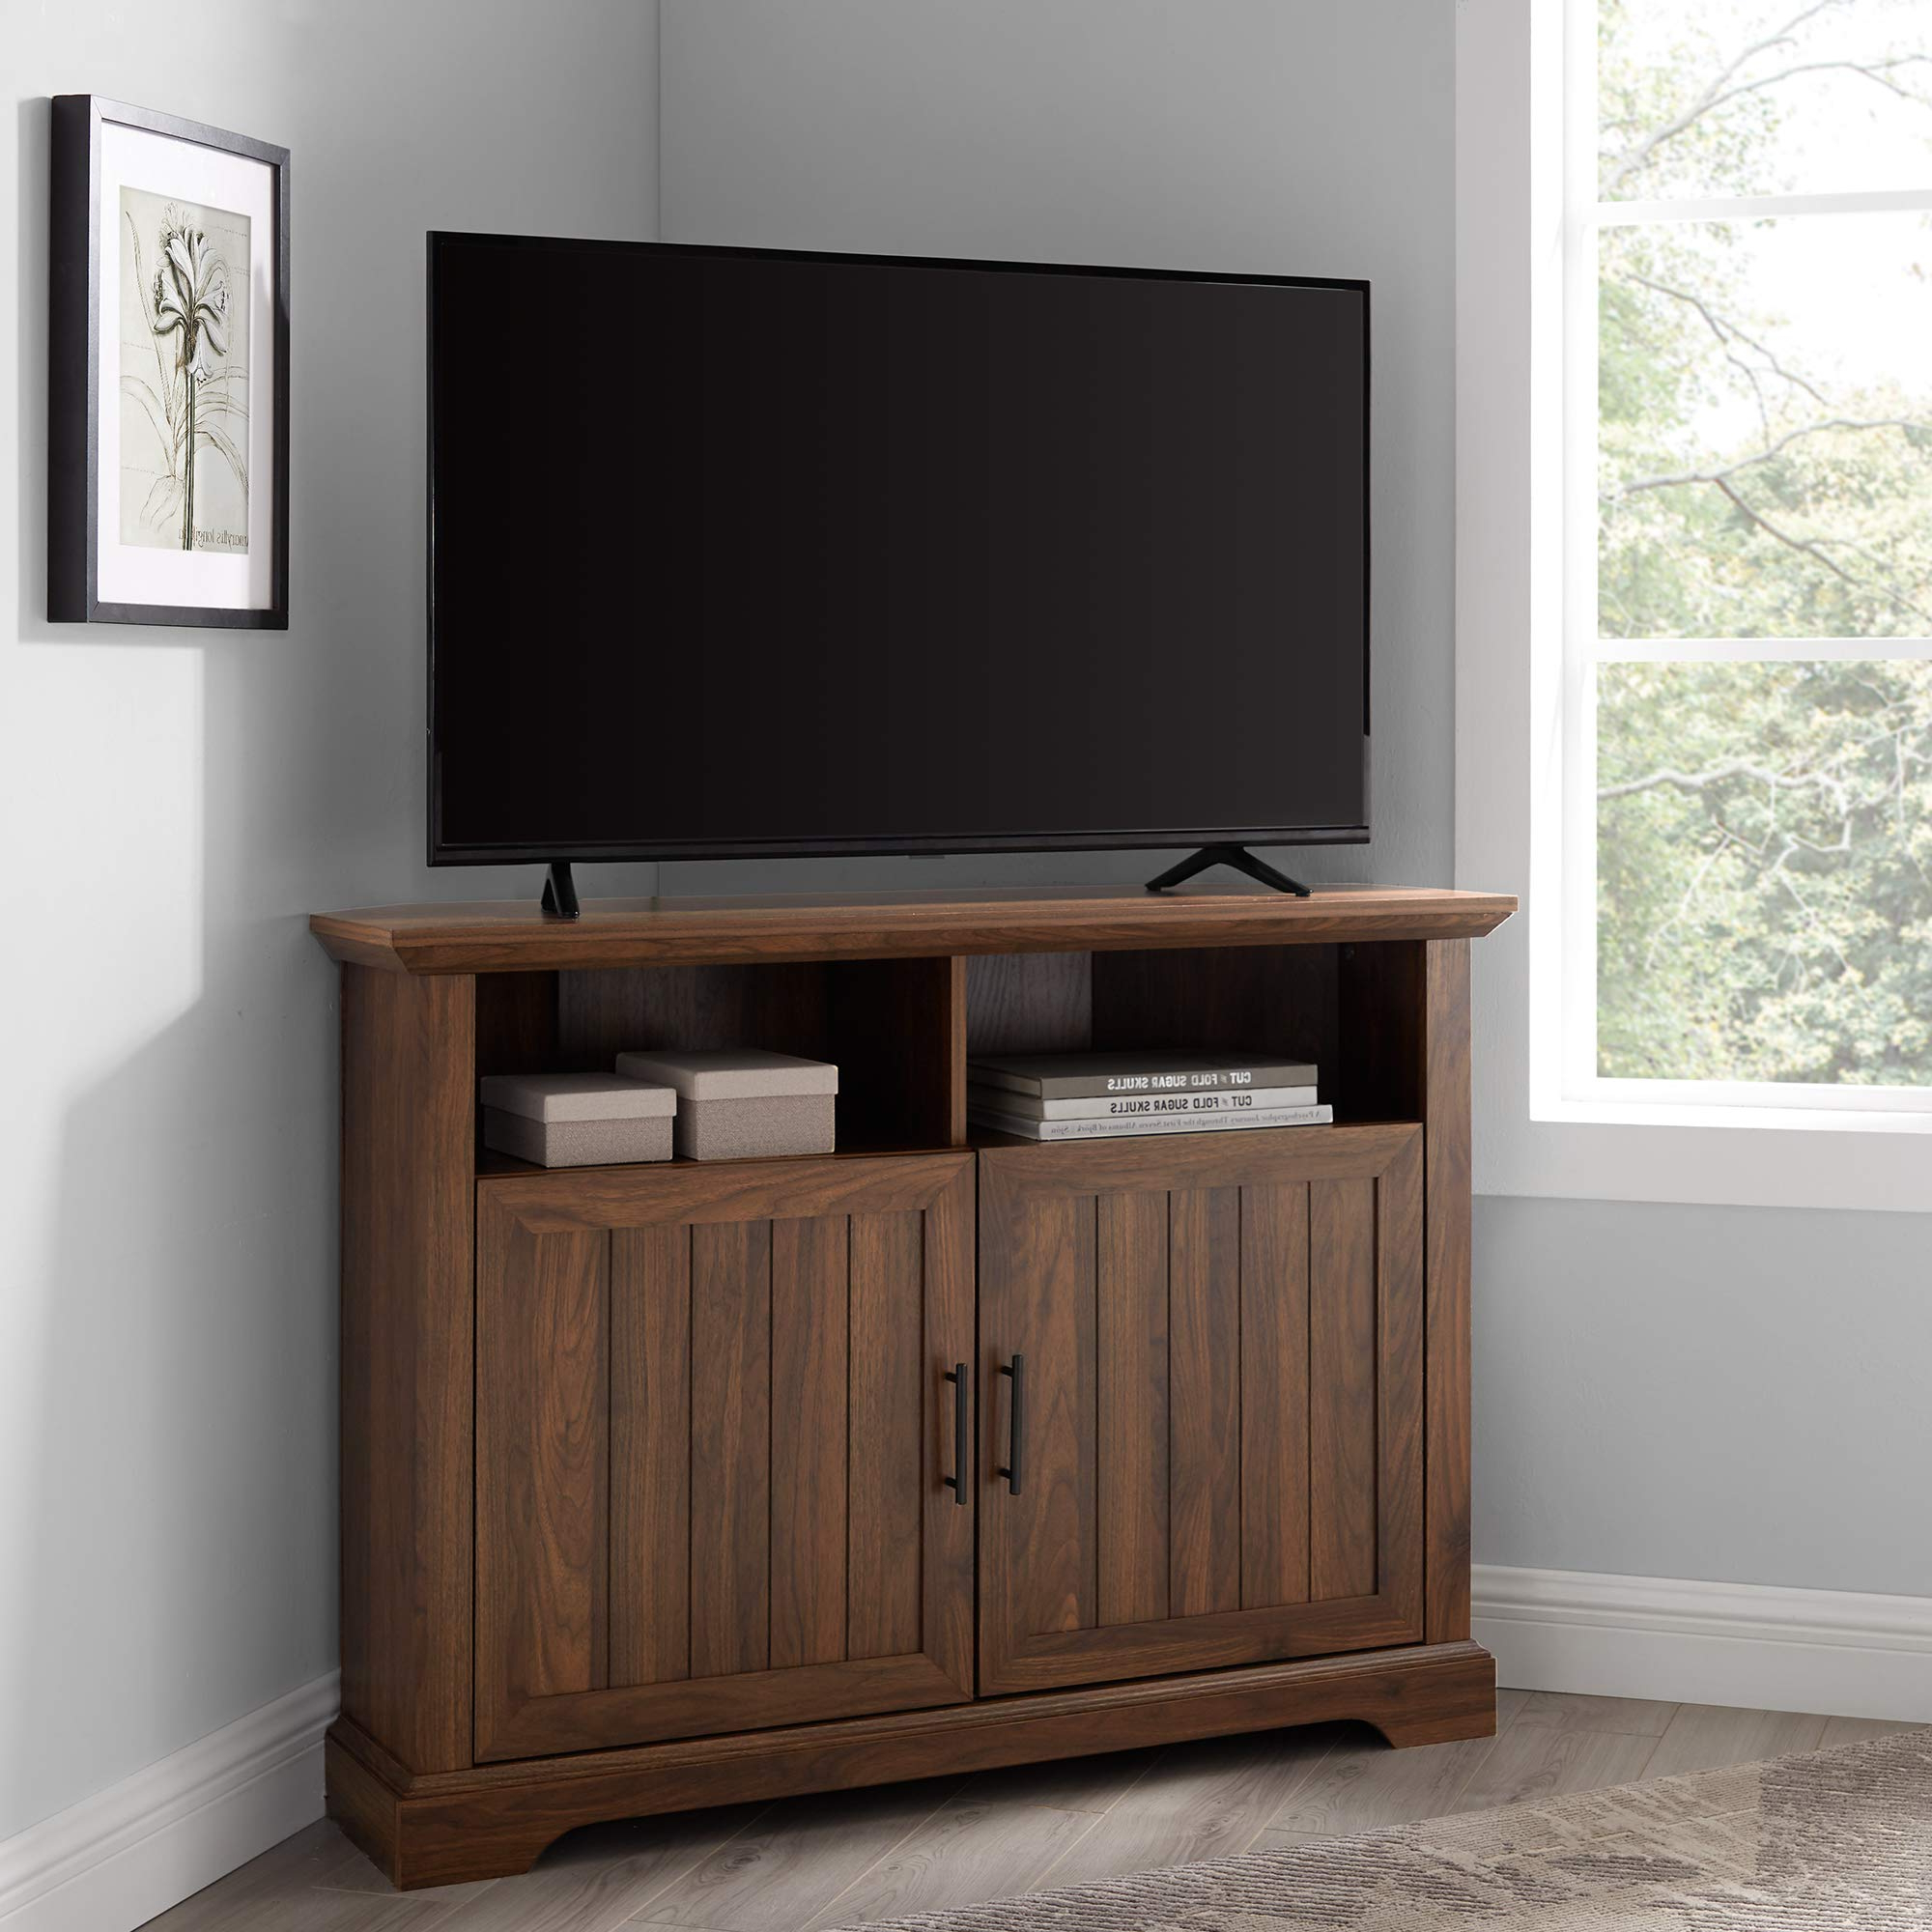 Most Current Walker Edison Furniture Company Mid Century Modern Wood Intended For Walker Edison Farmhouse Tv Stands With Storage Cabinet Doors And Shelves (View 3 of 10)